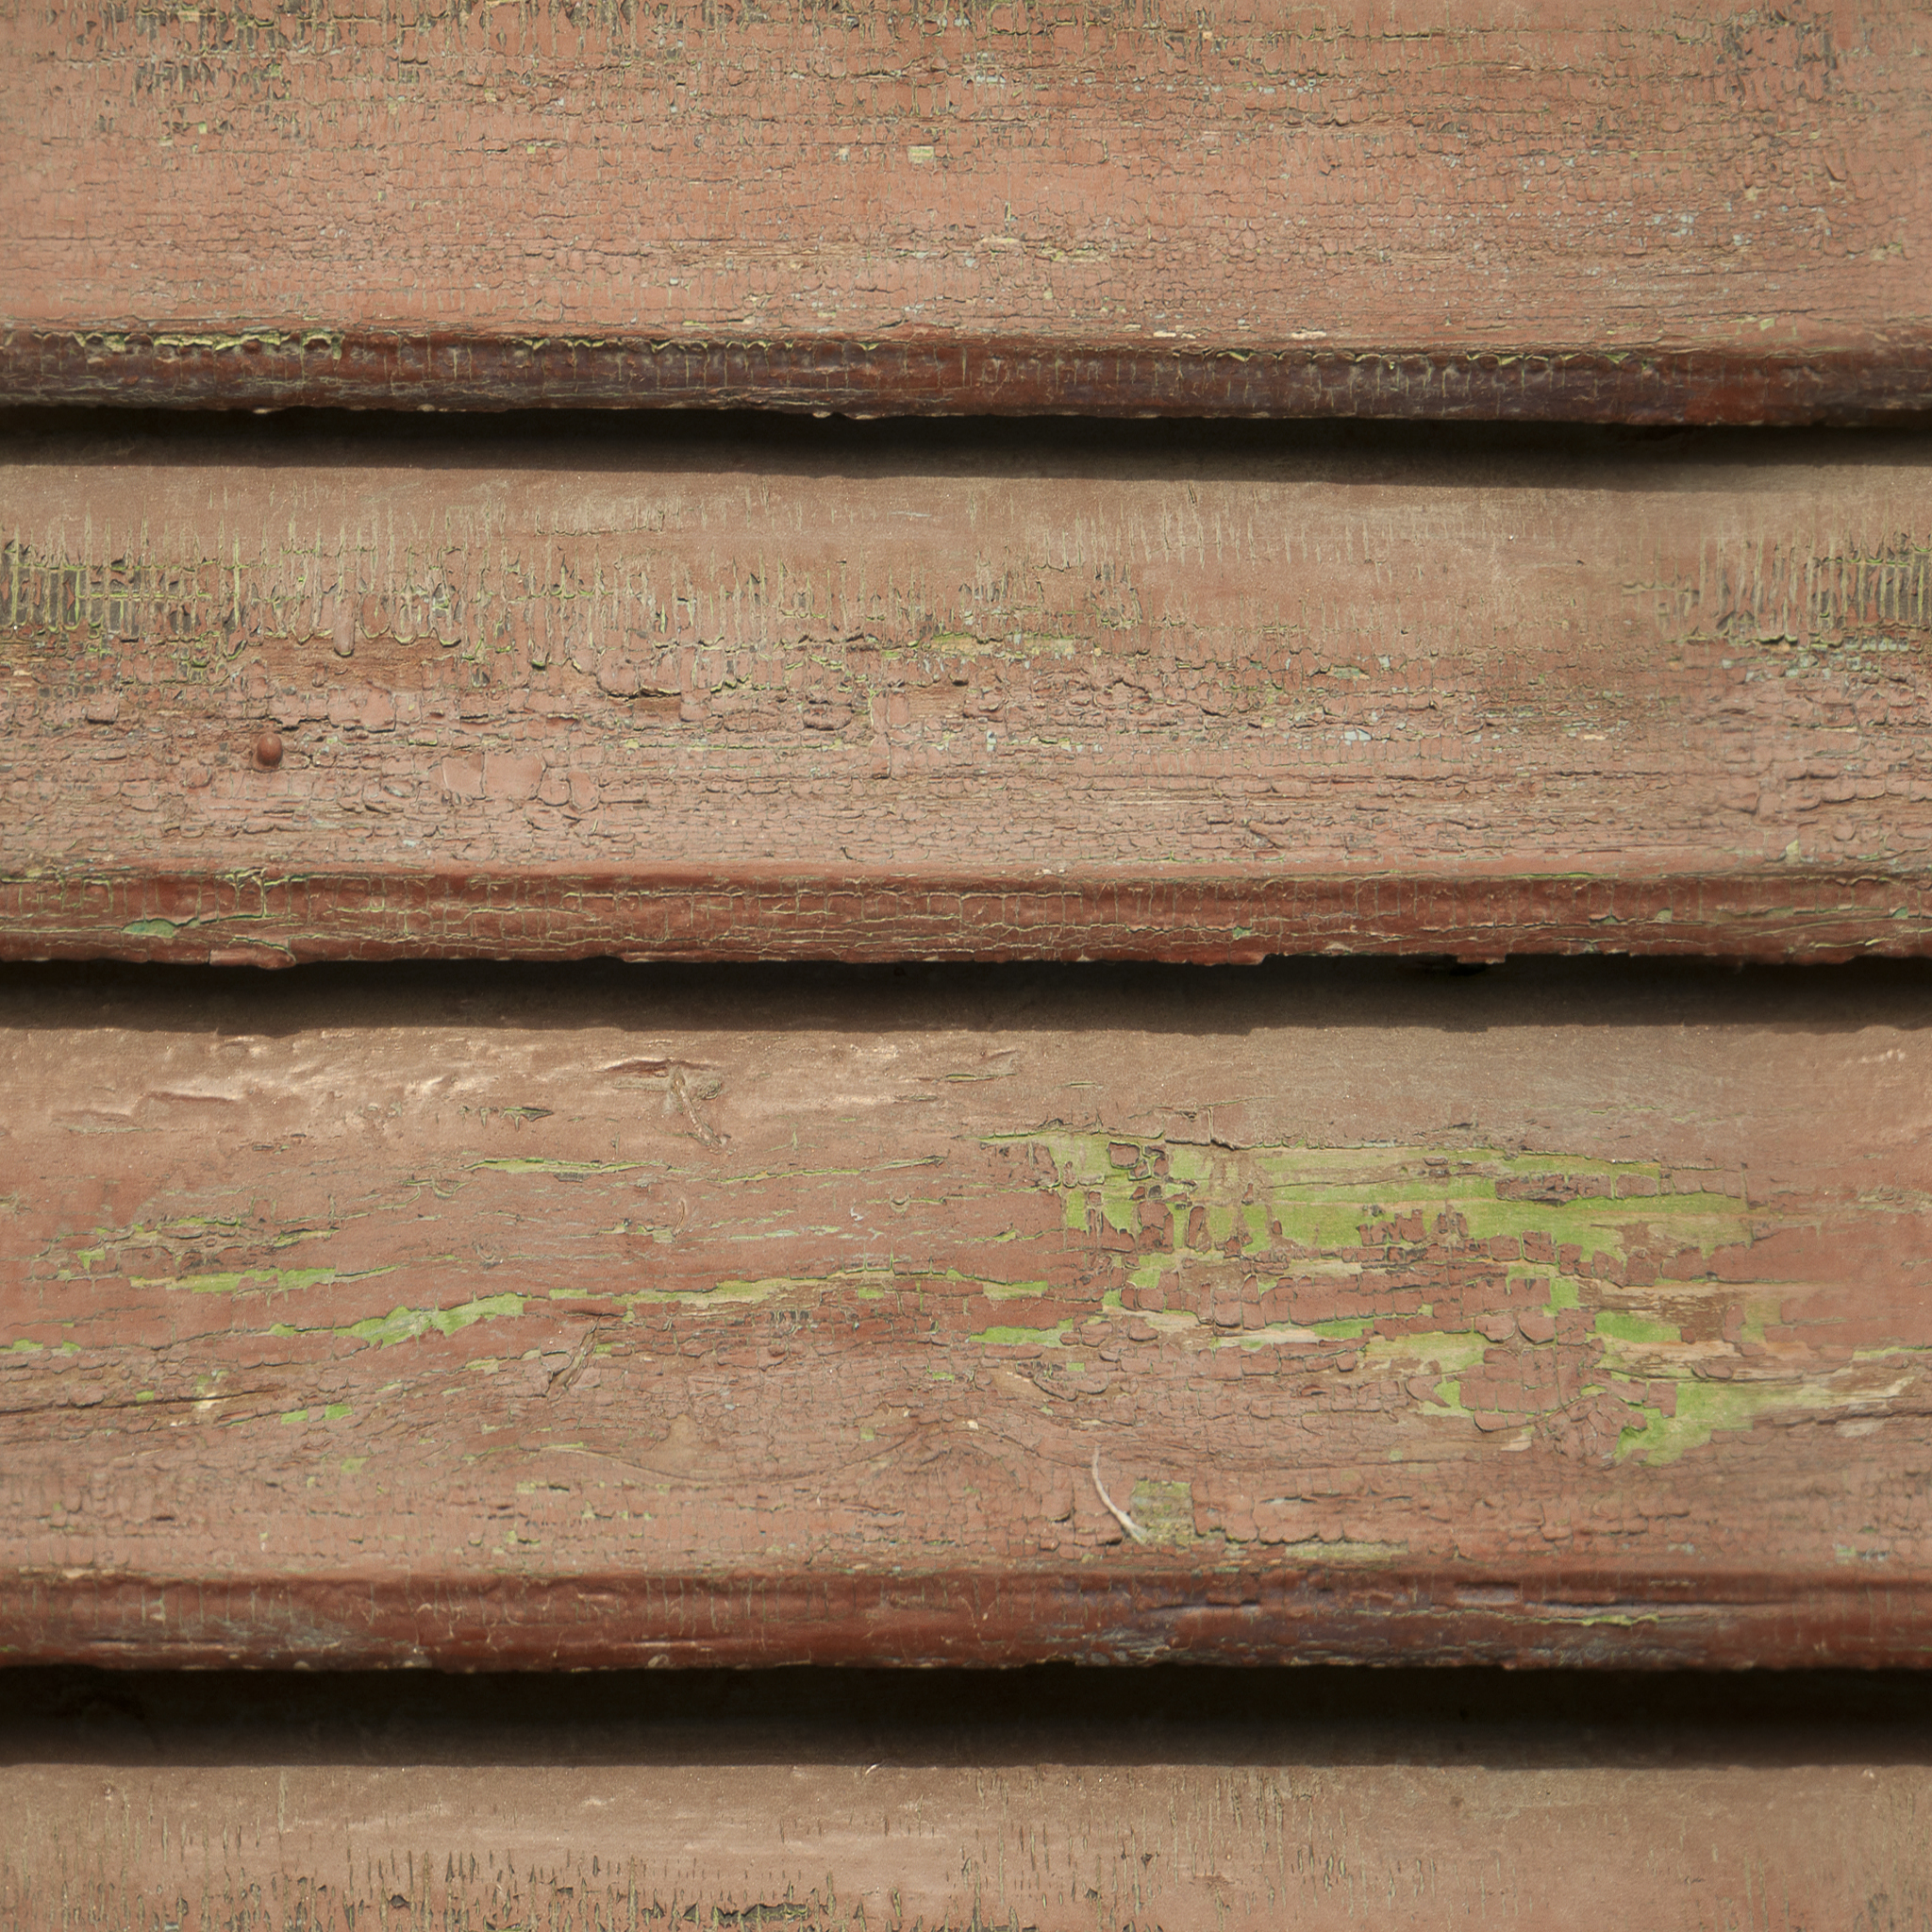 Brown Repainted Wood Siding.jpg